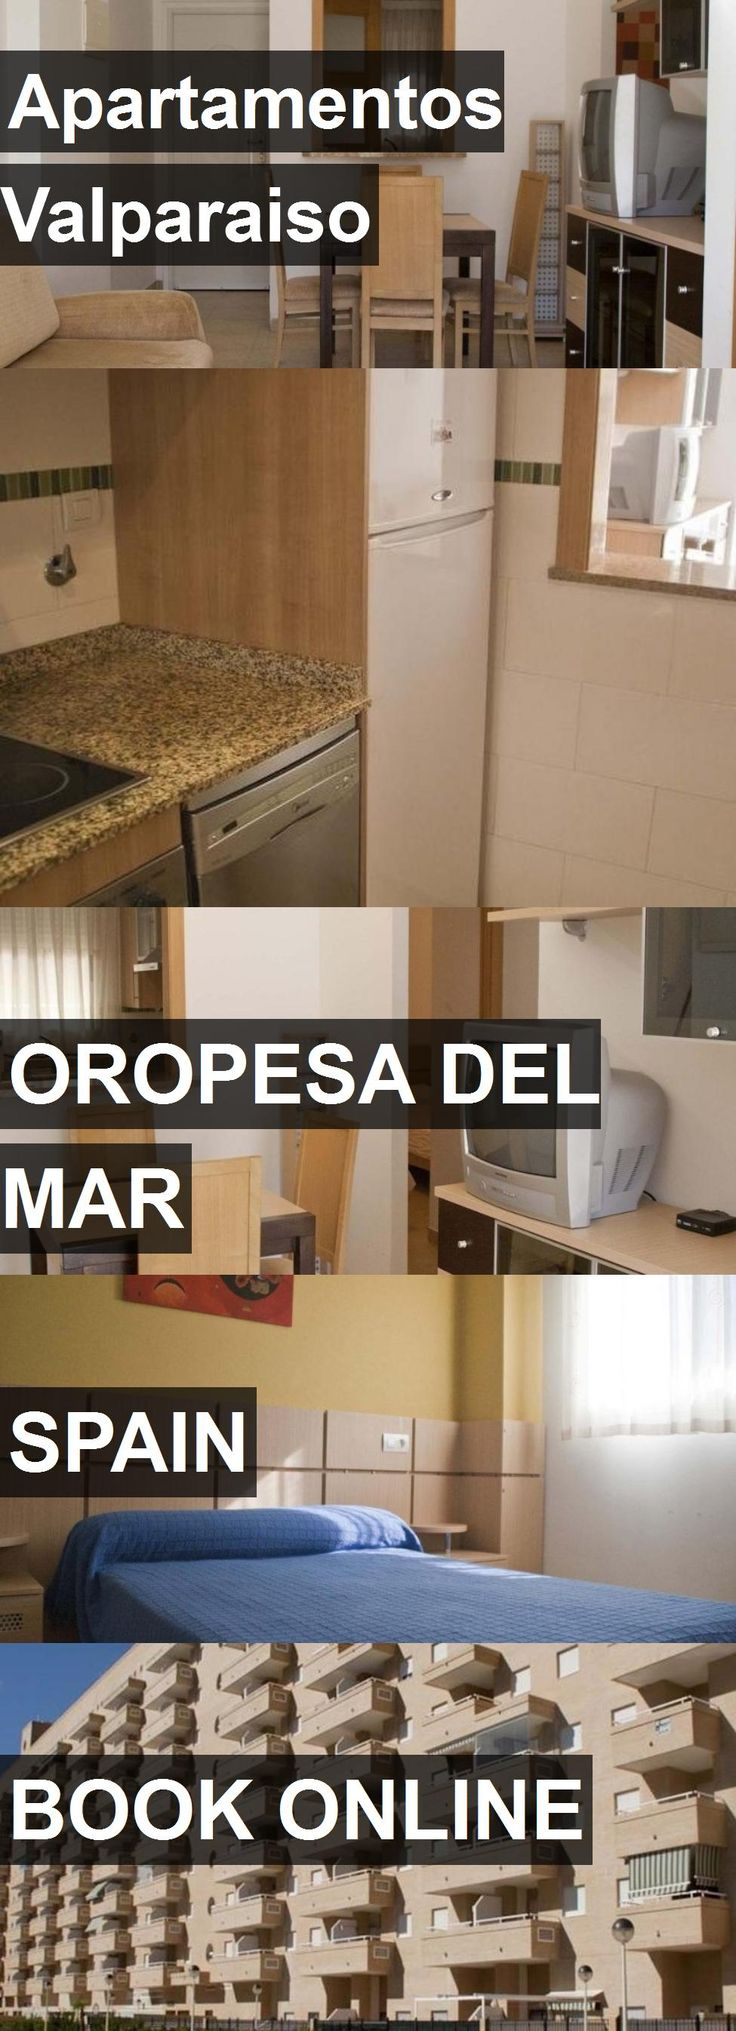 Hotel Apartamentos Valparaiso in Oropesa del Mar, Spain. For more information, photos, reviews and best prices please follow the link. #Spain #OropesadelMar #travel #vacation #hotel